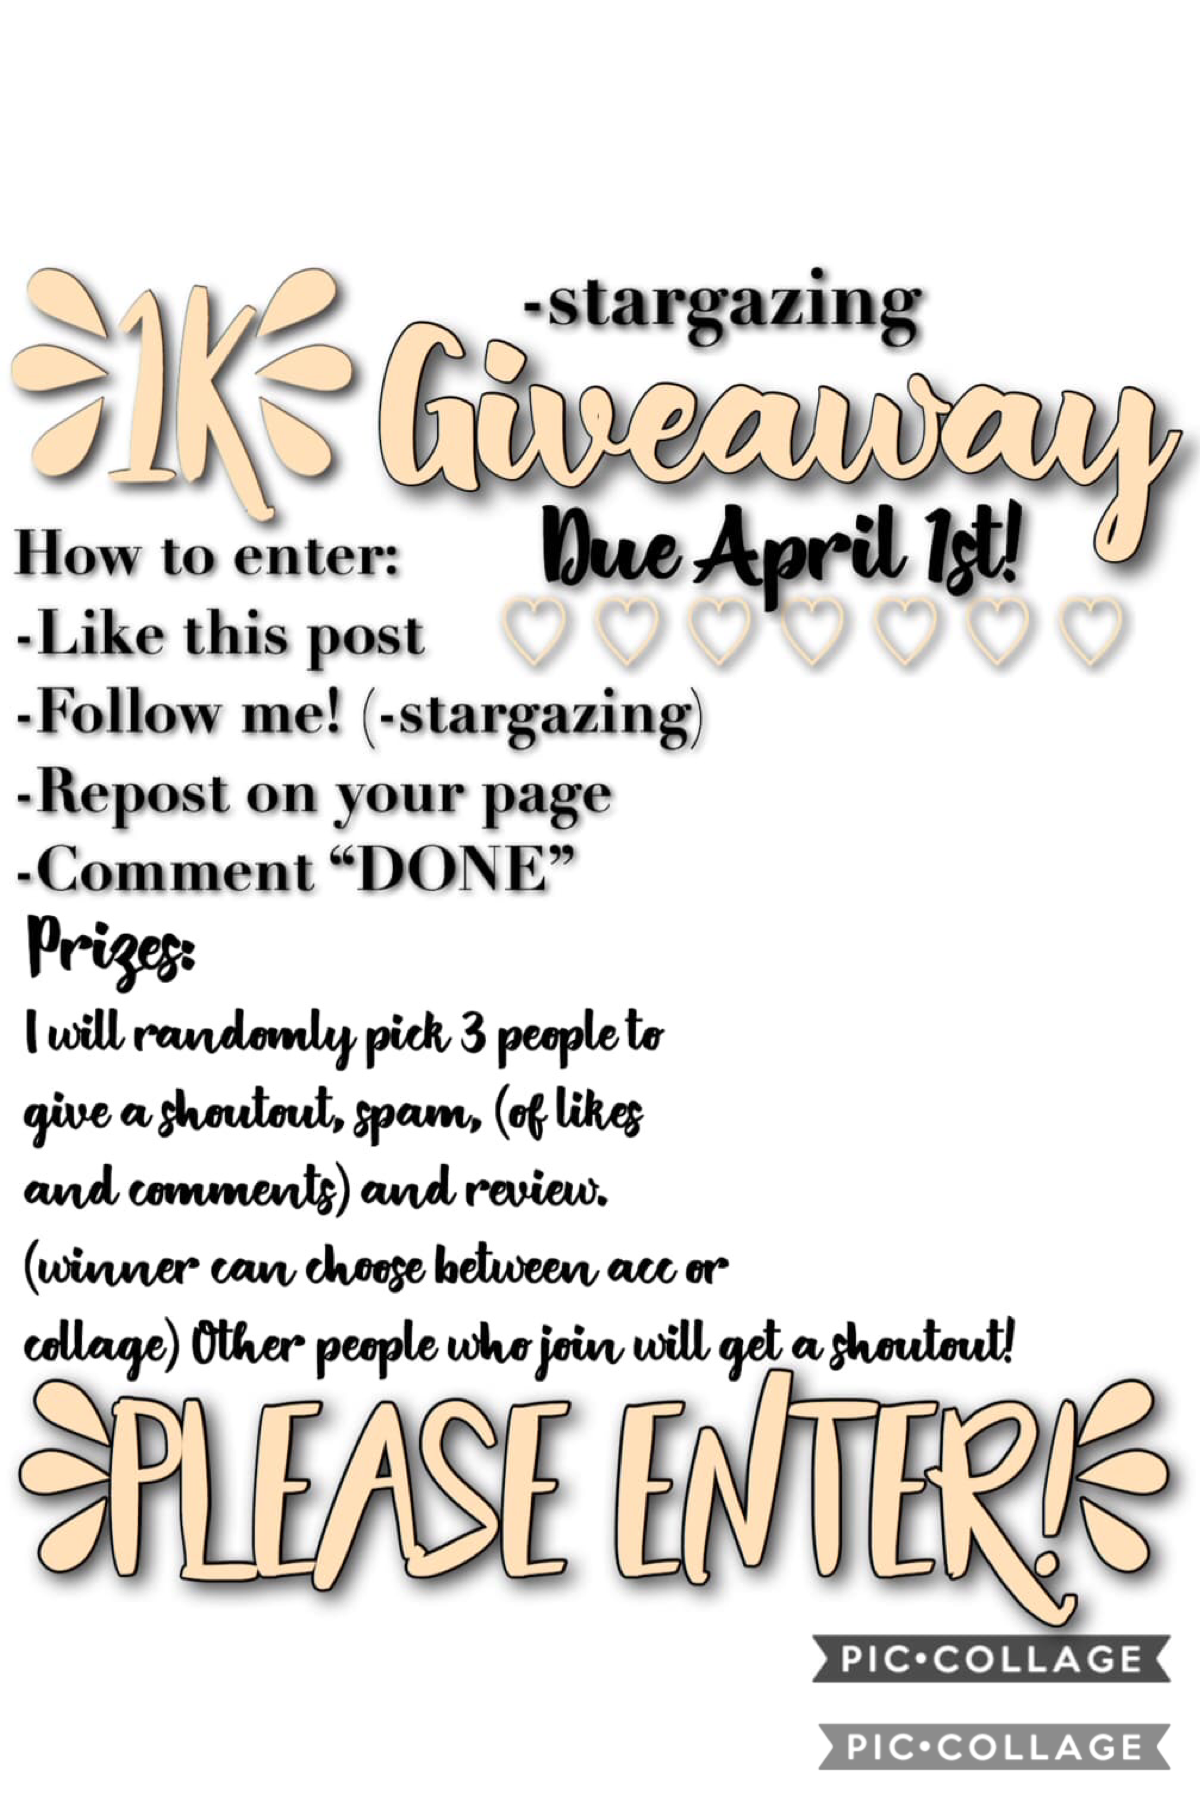 for -stargazing's giveaway! dont join lol